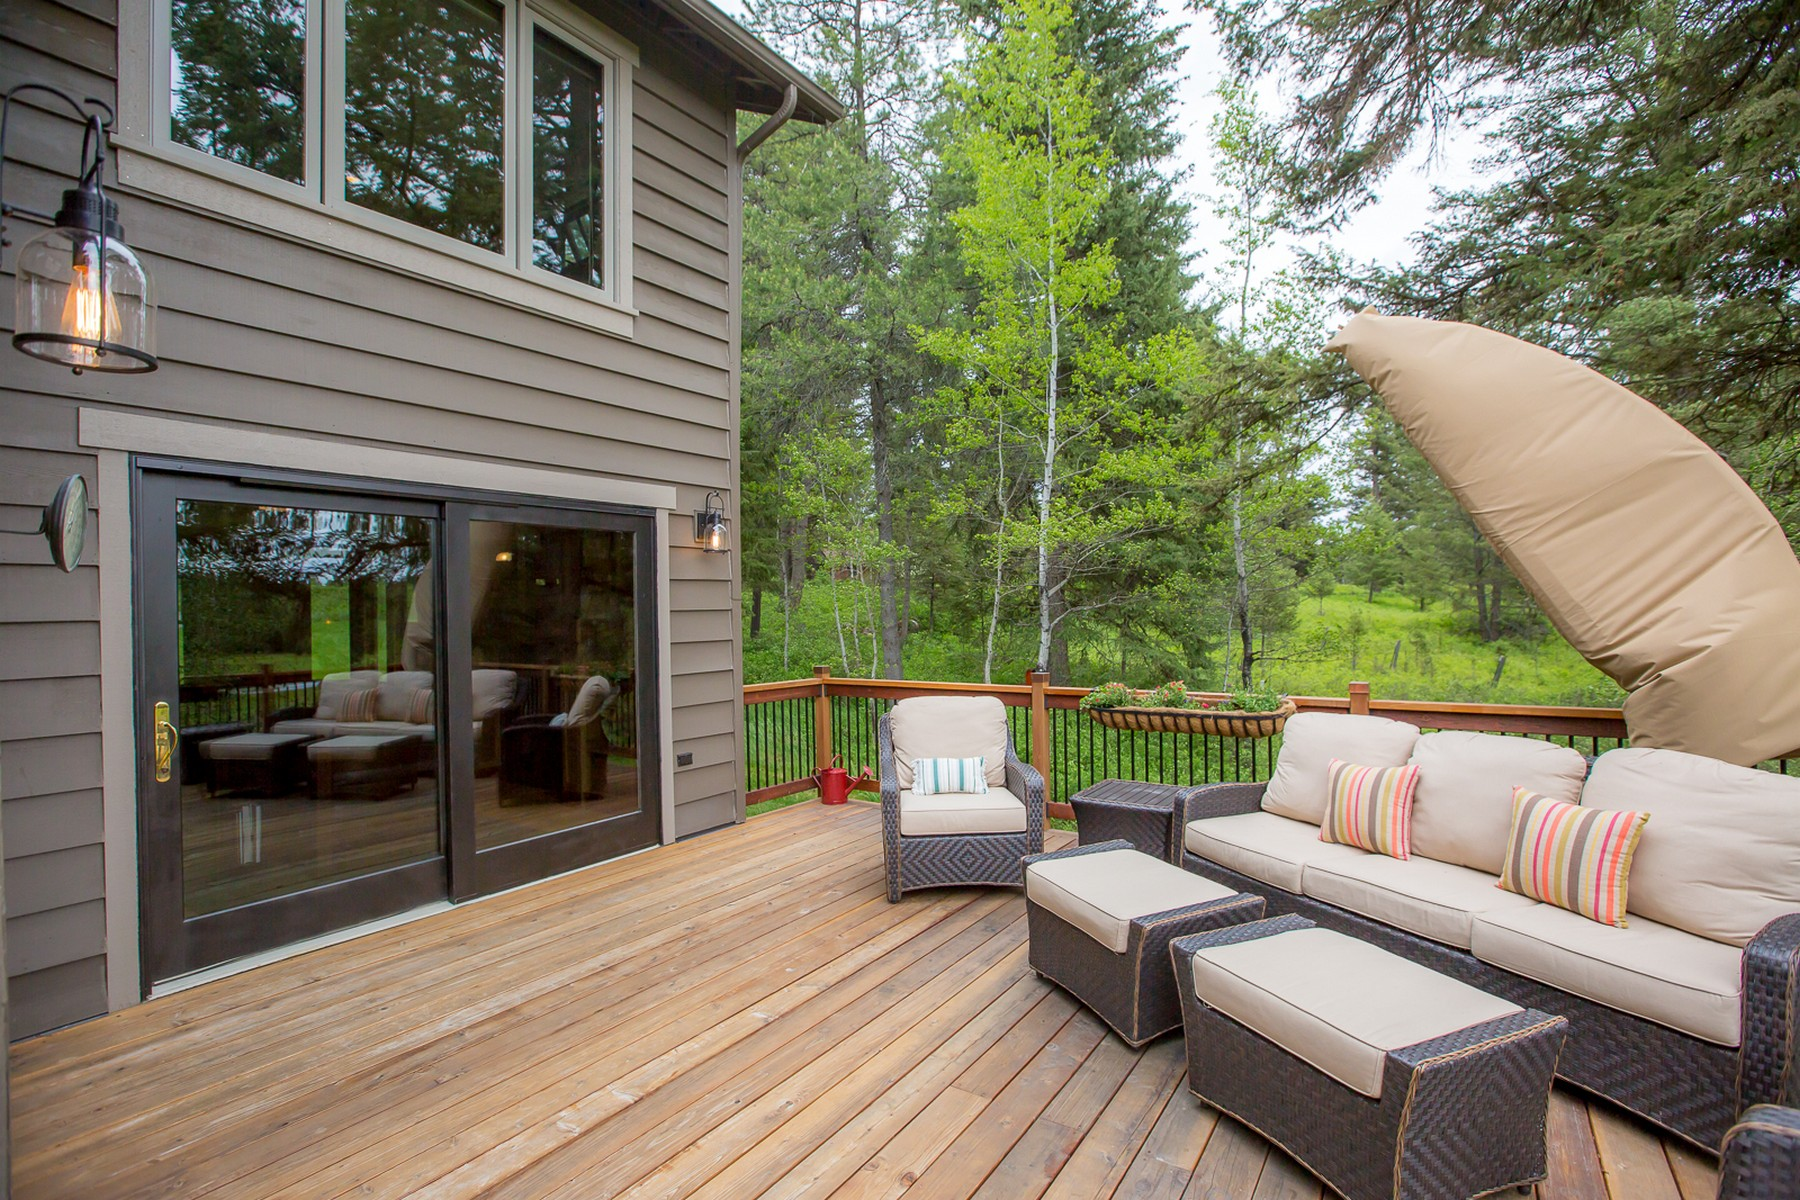 Additional photo for property listing at 108 Park Knoll Ln , Whitefish, MT 59937 108  Park Knoll Ln Whitefish, Montana 59937 United States